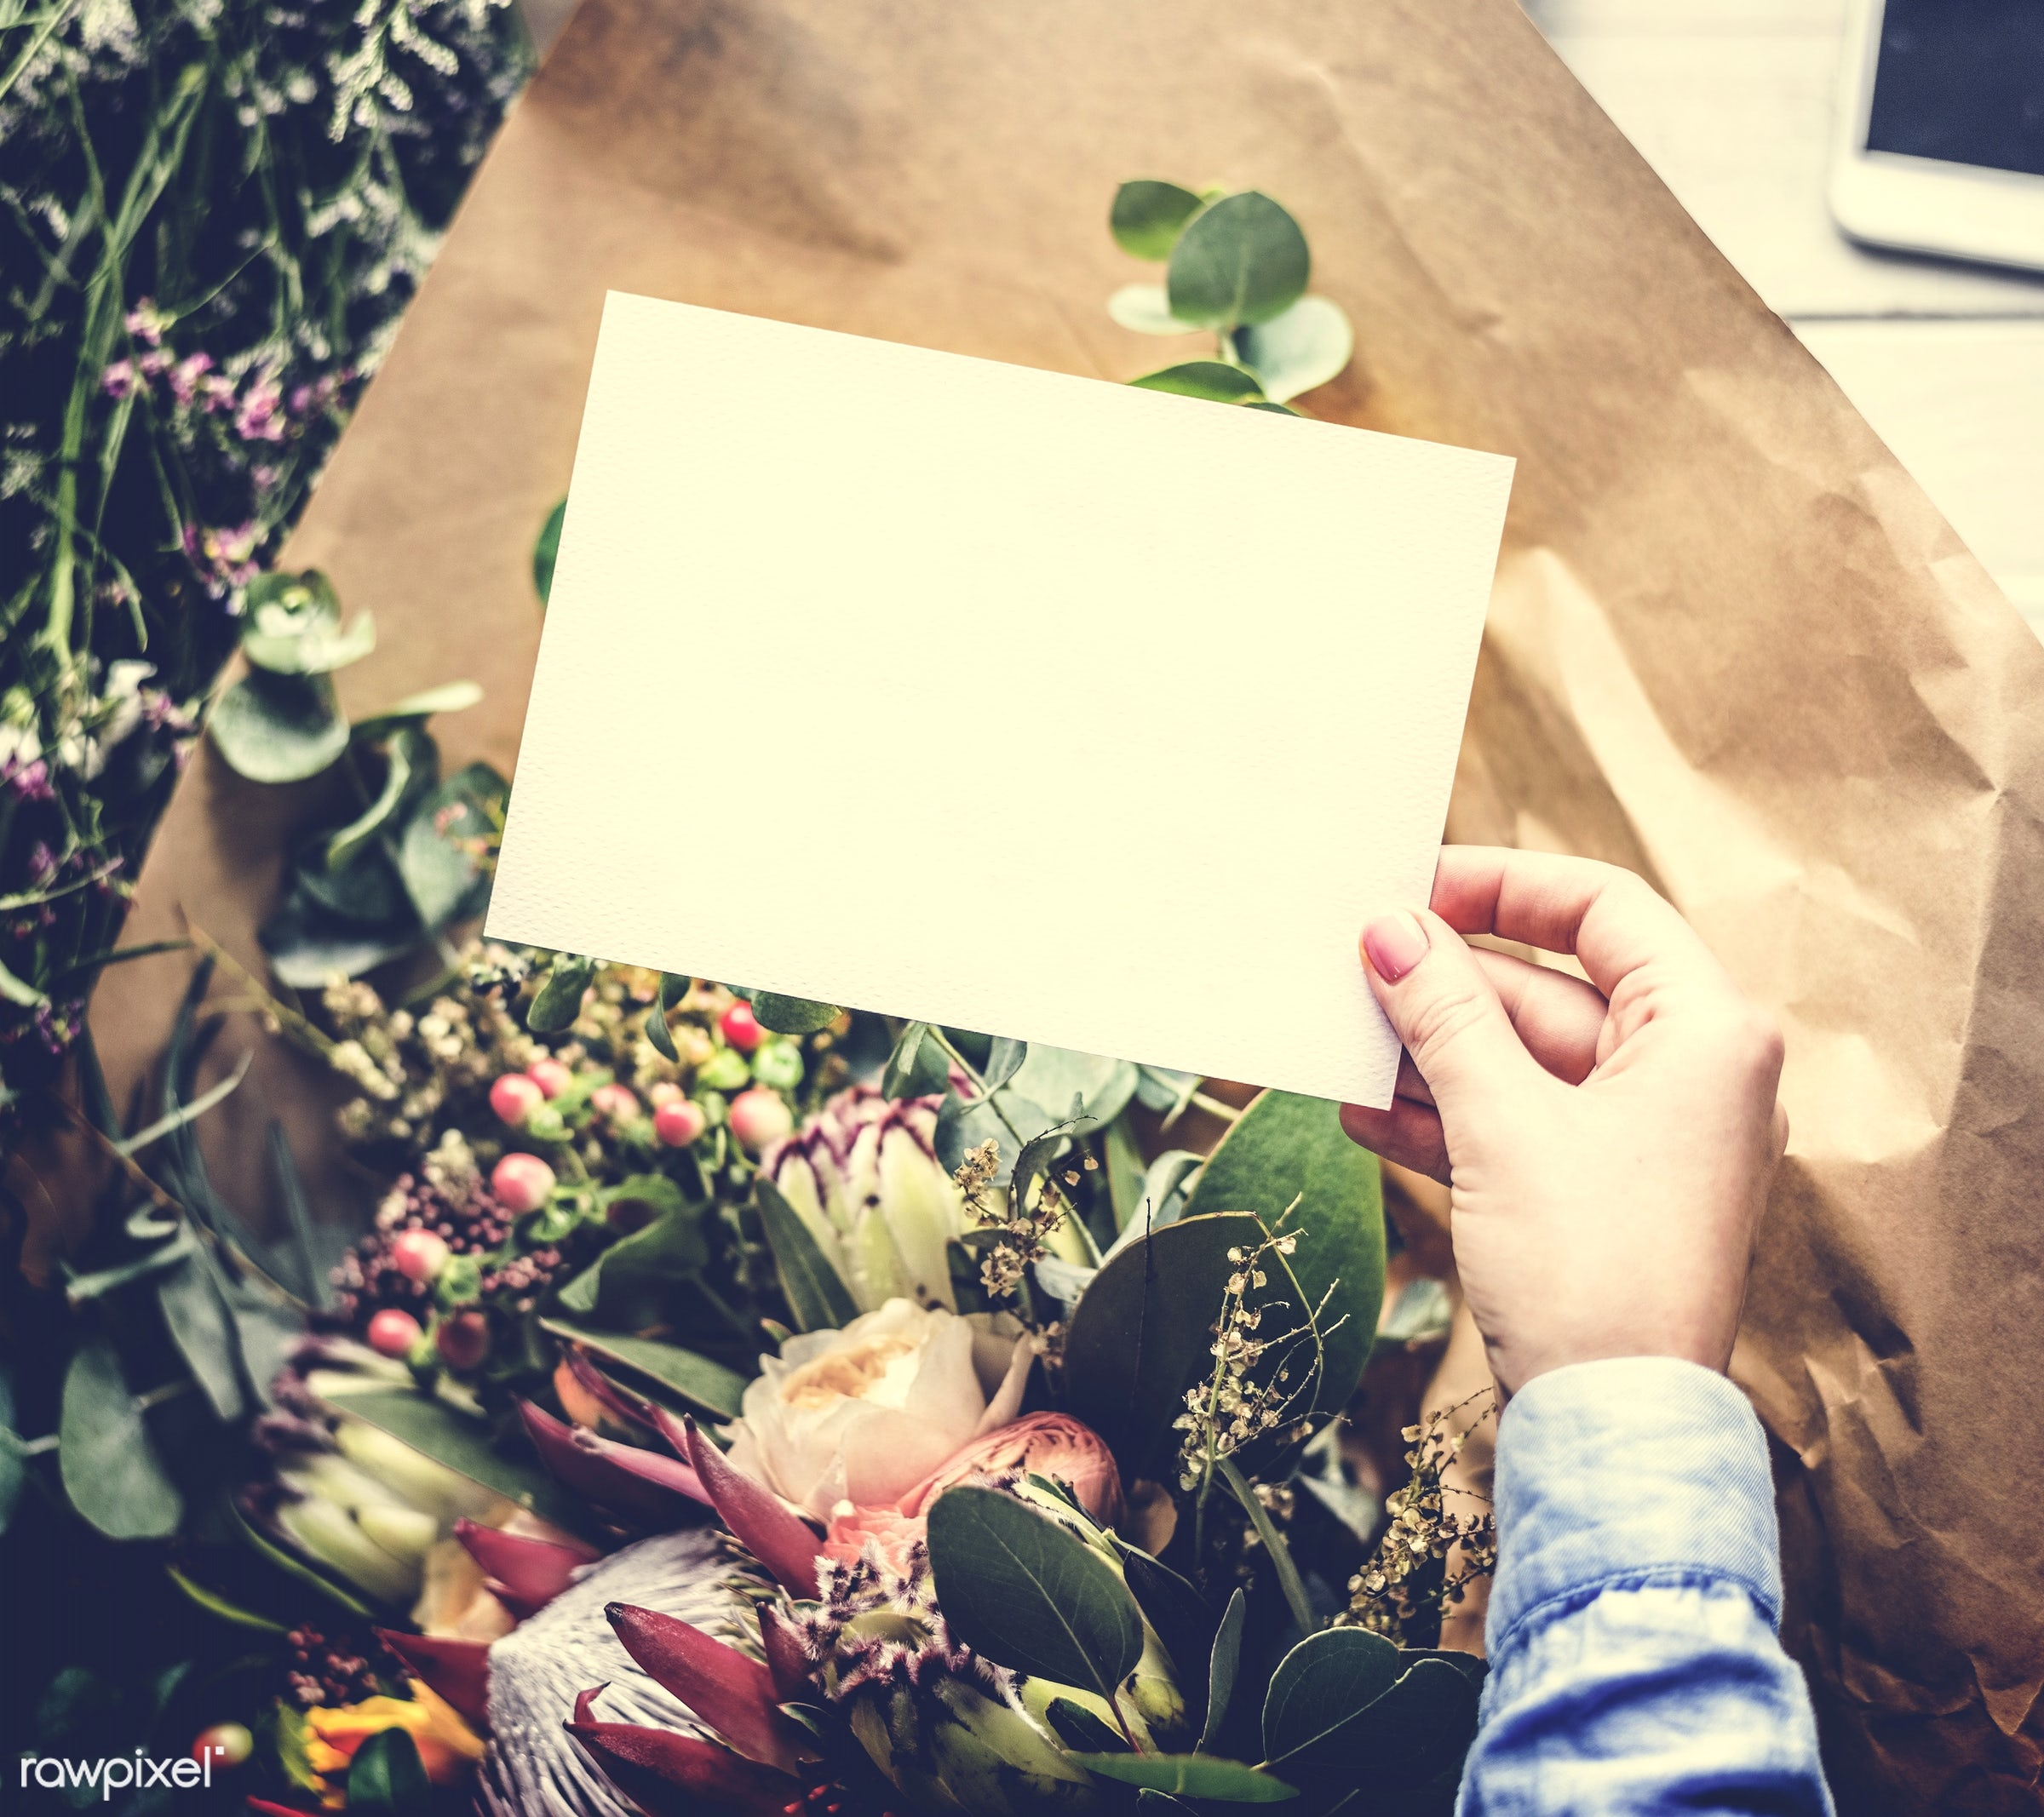 bouquet, detail, person, wrapped, wish, show, people, decor, nature, empty, card, flowers, greeting, hold, refreshment,...